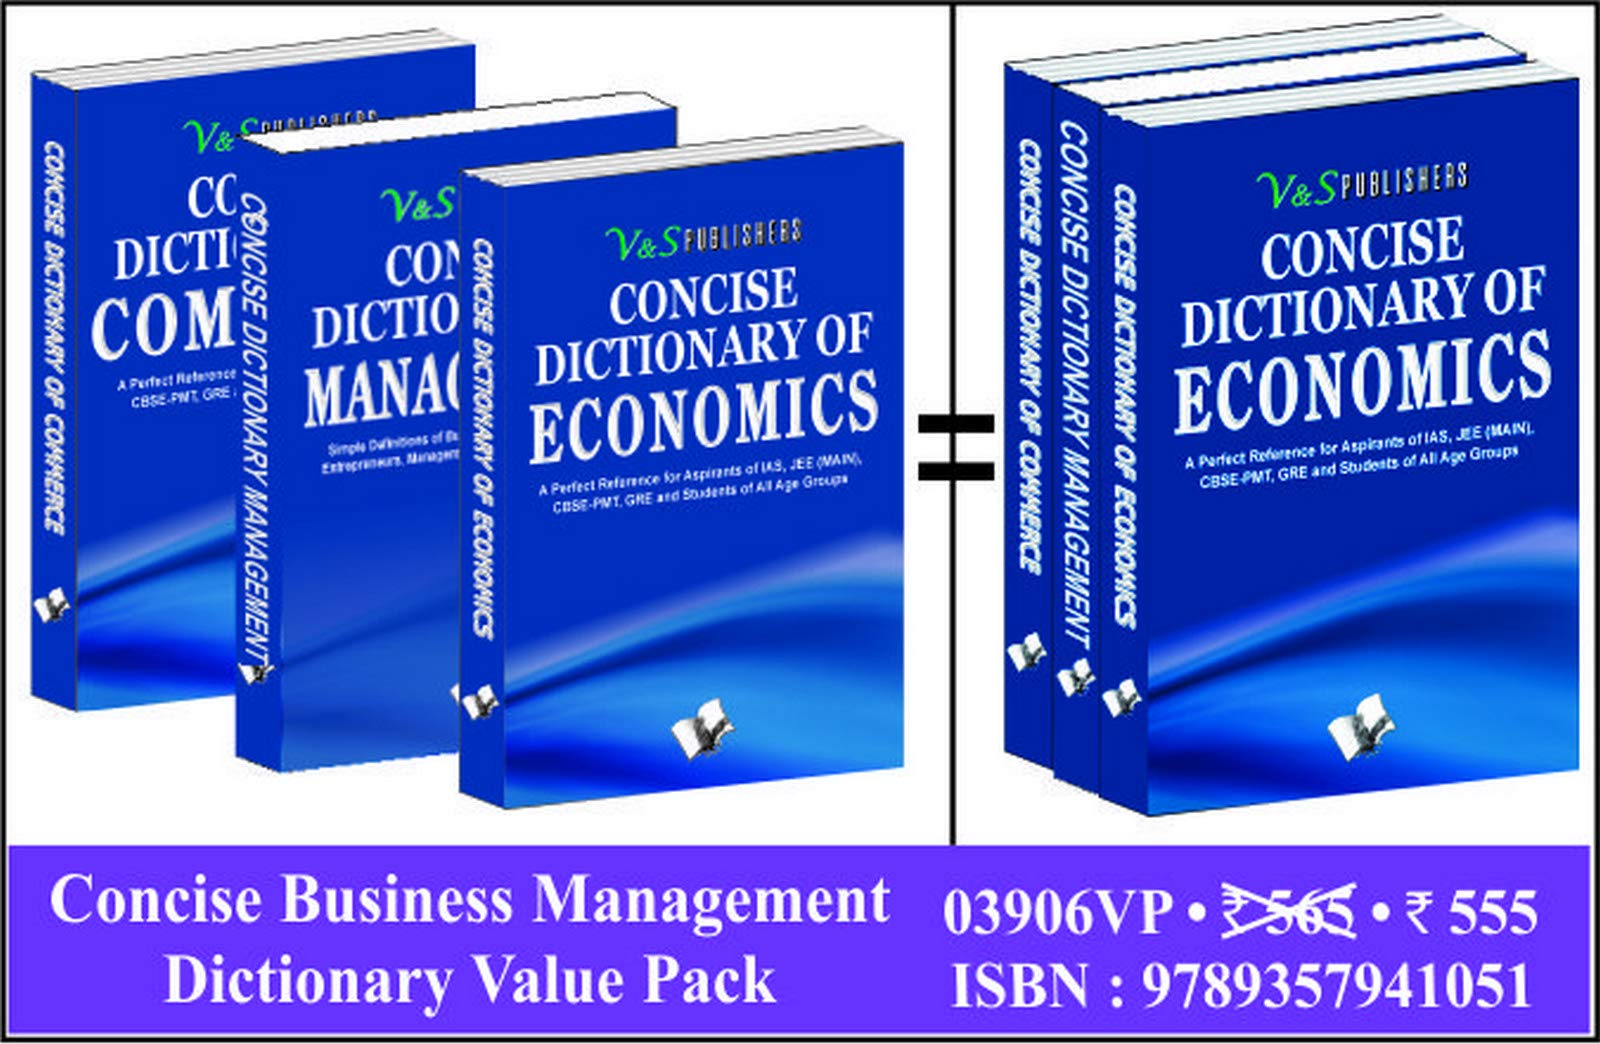 Concise Business Management Dictionary Value Pack